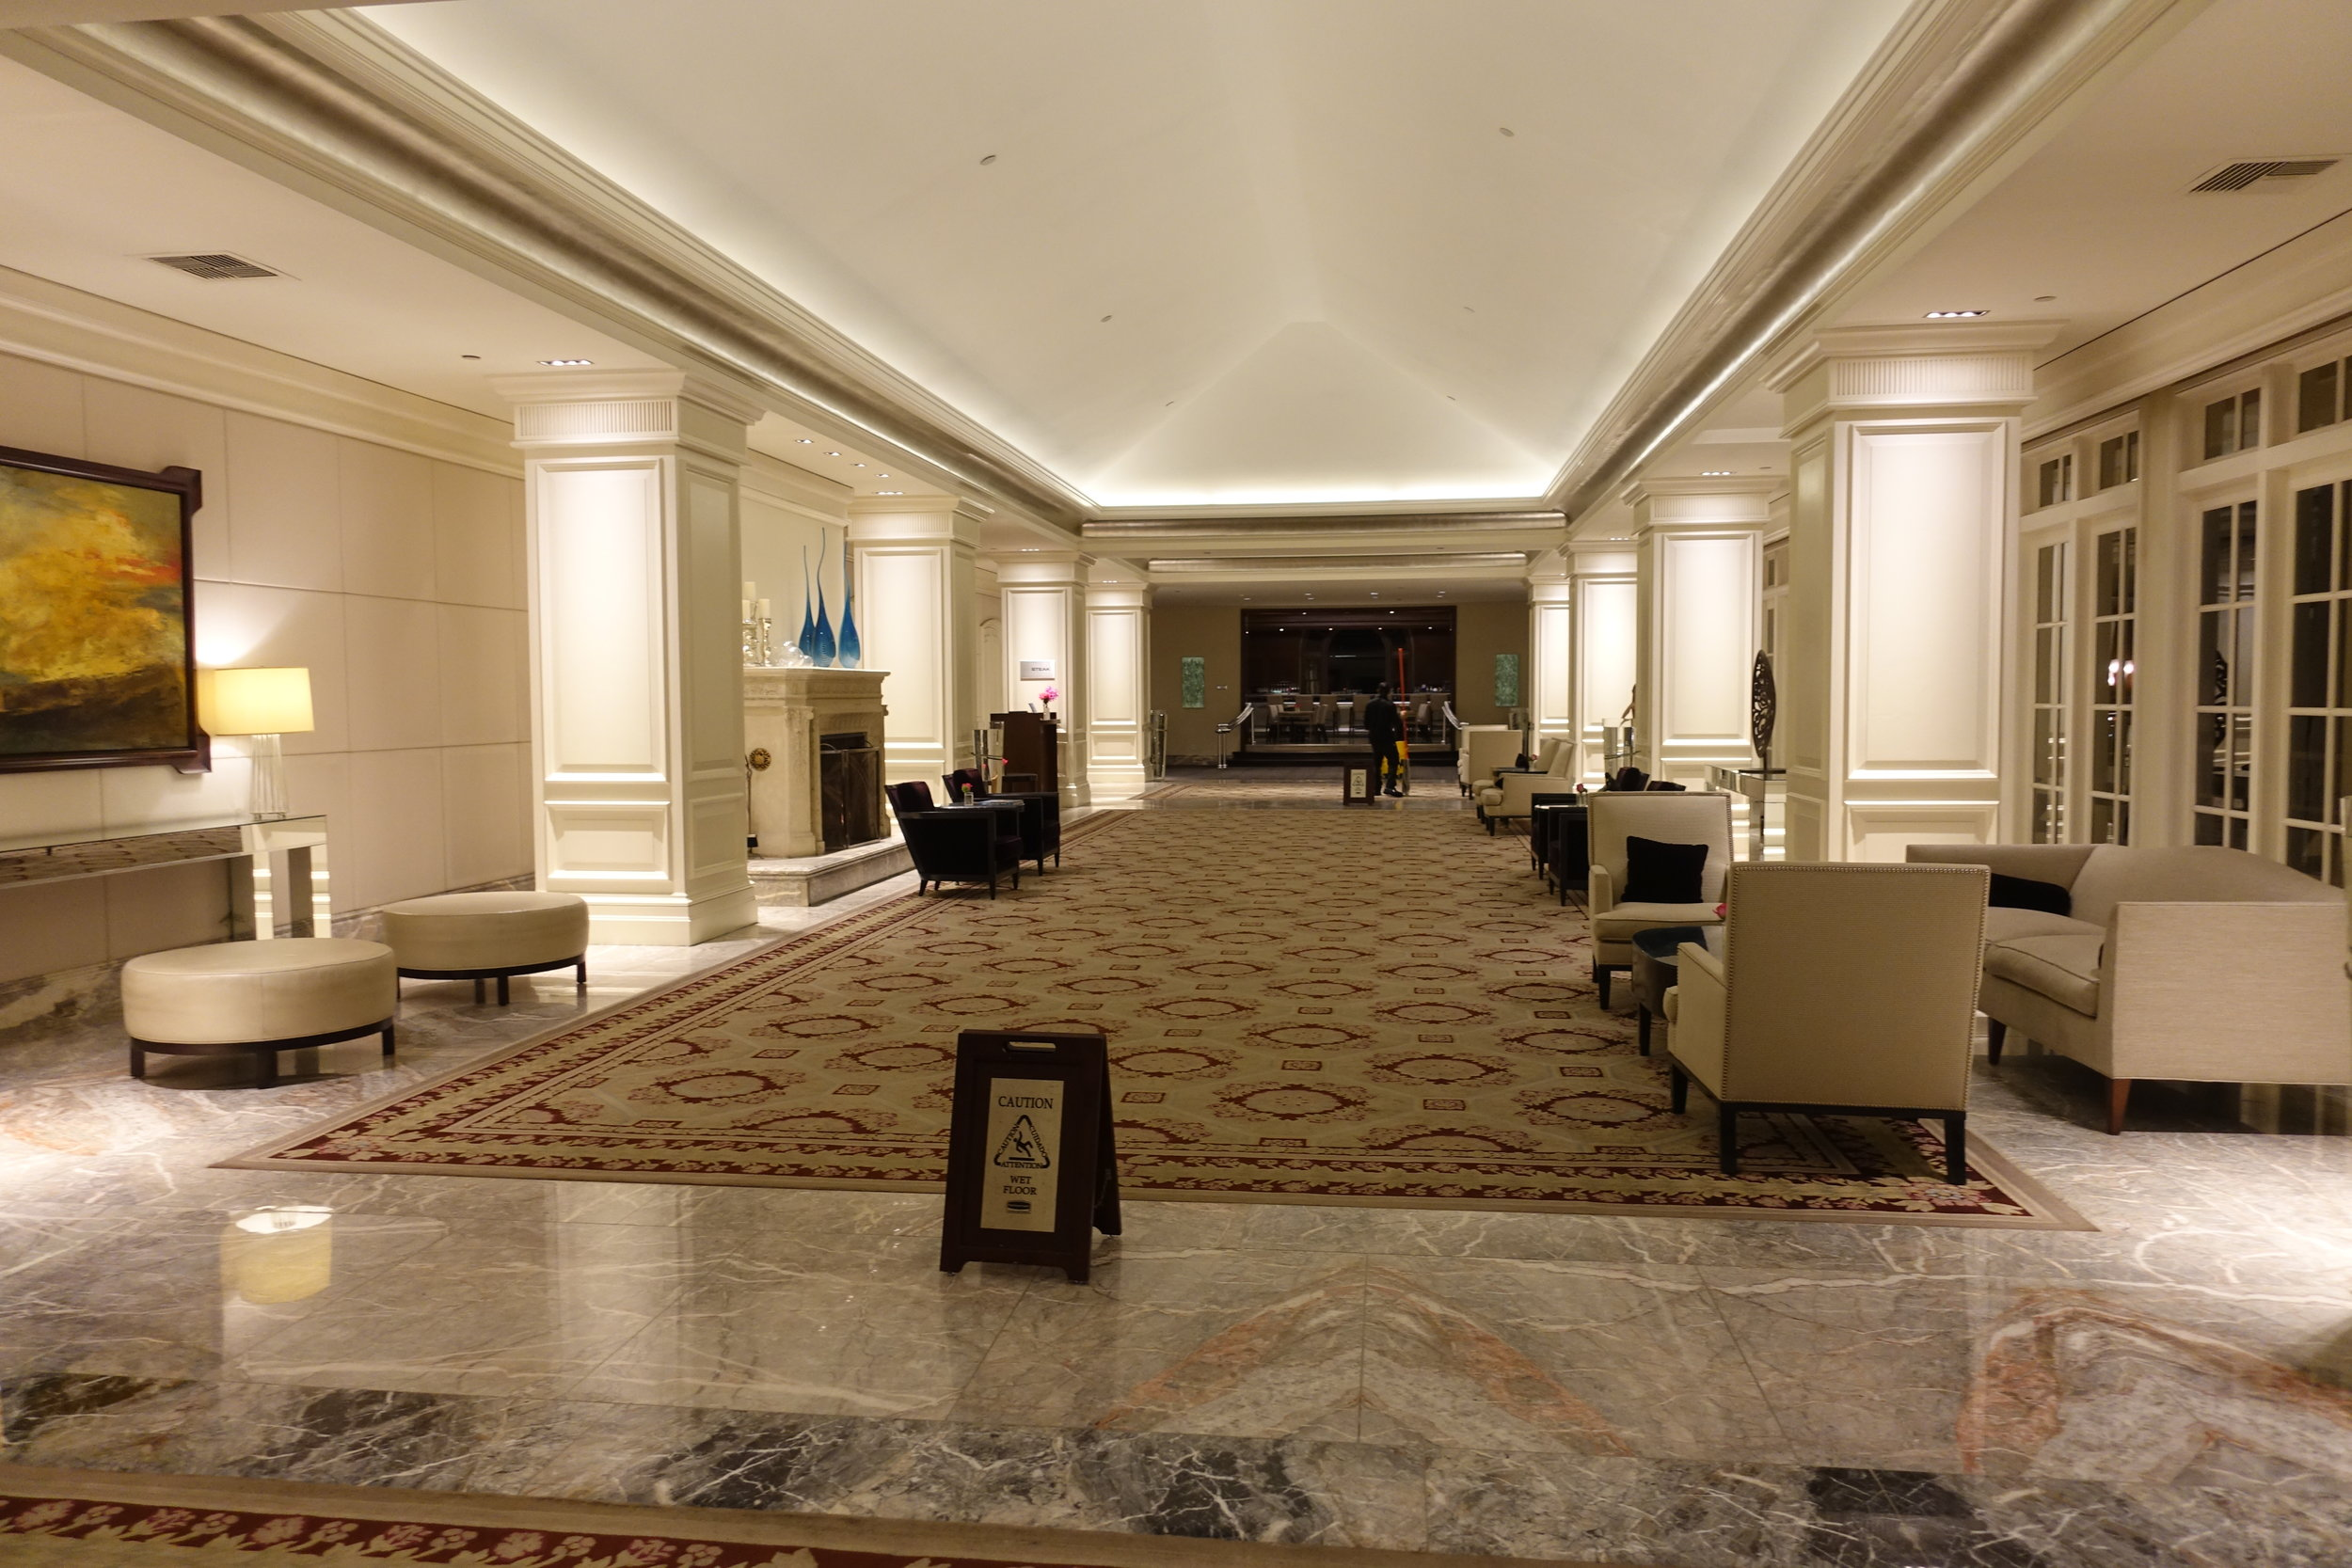 Long hallway leading to dining and rooms